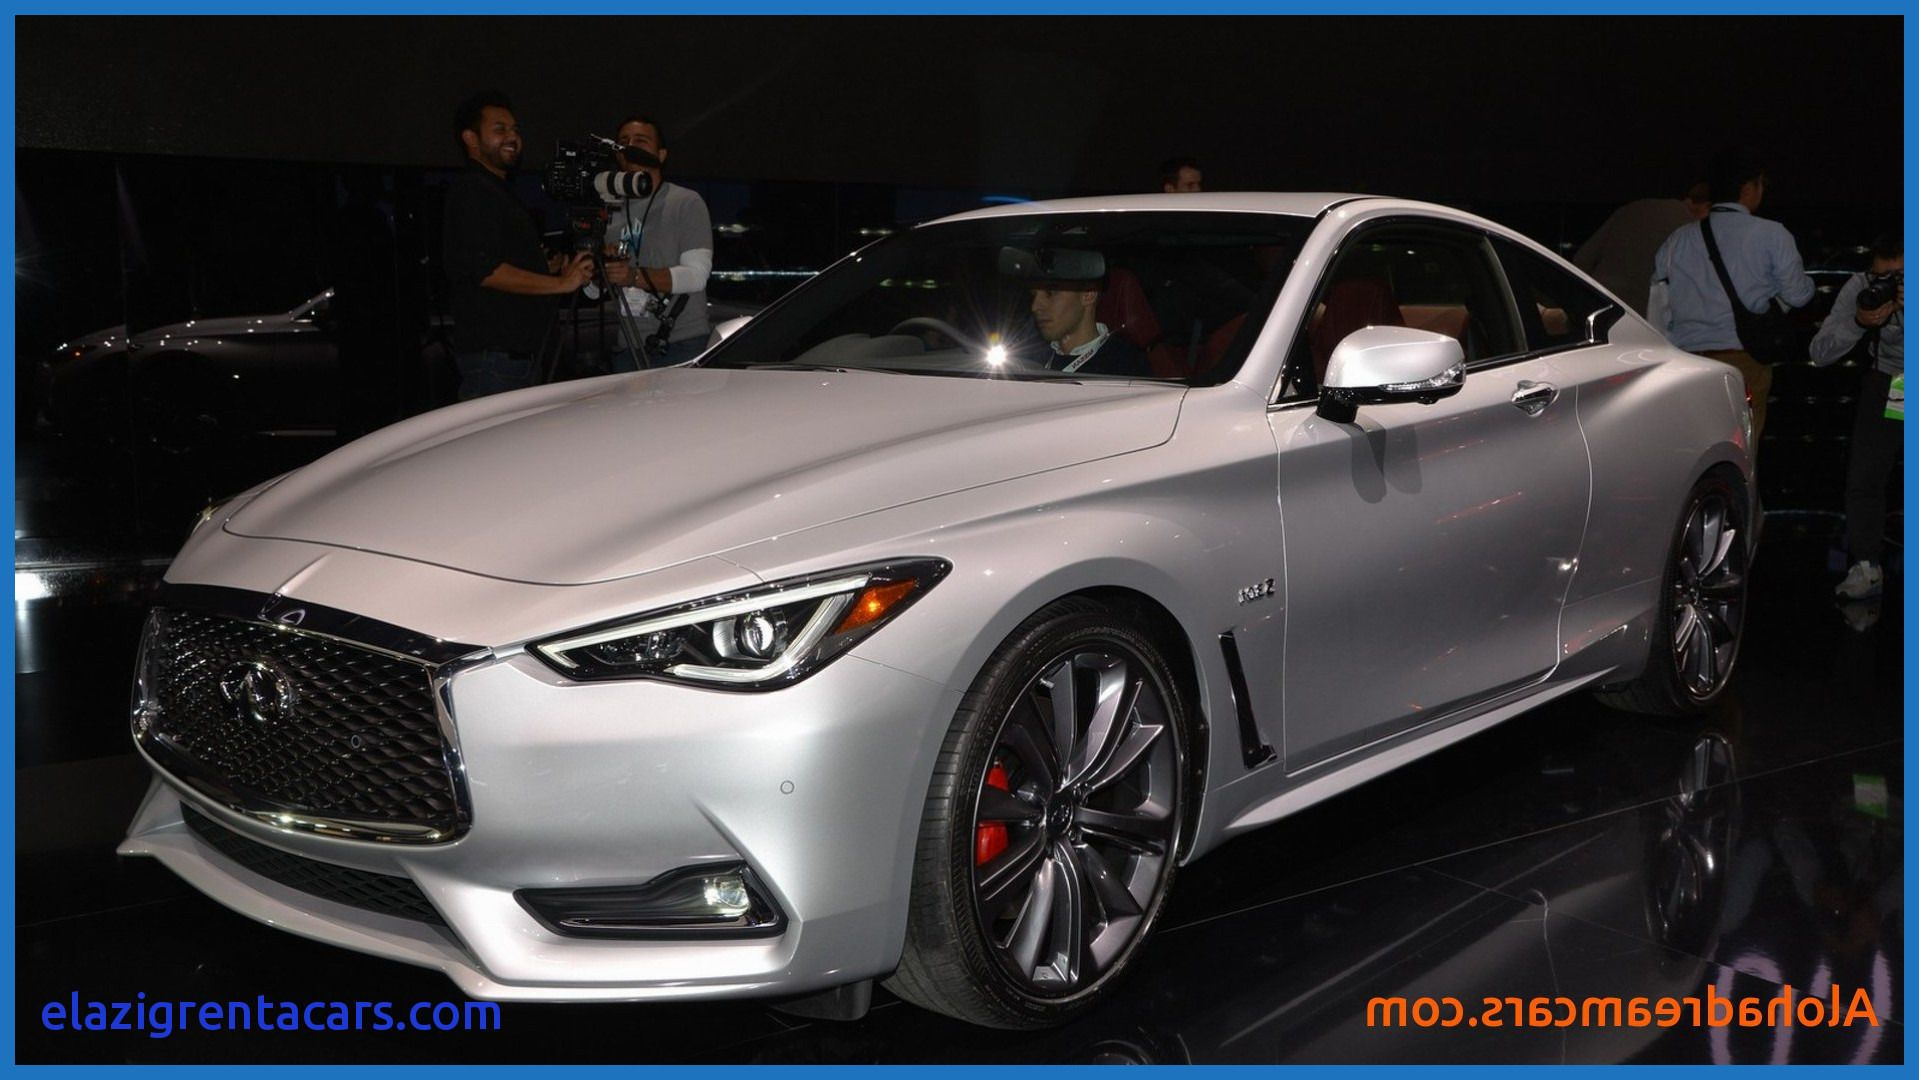 2019 Infiniti Q60 Coupe Convertible Check more at http